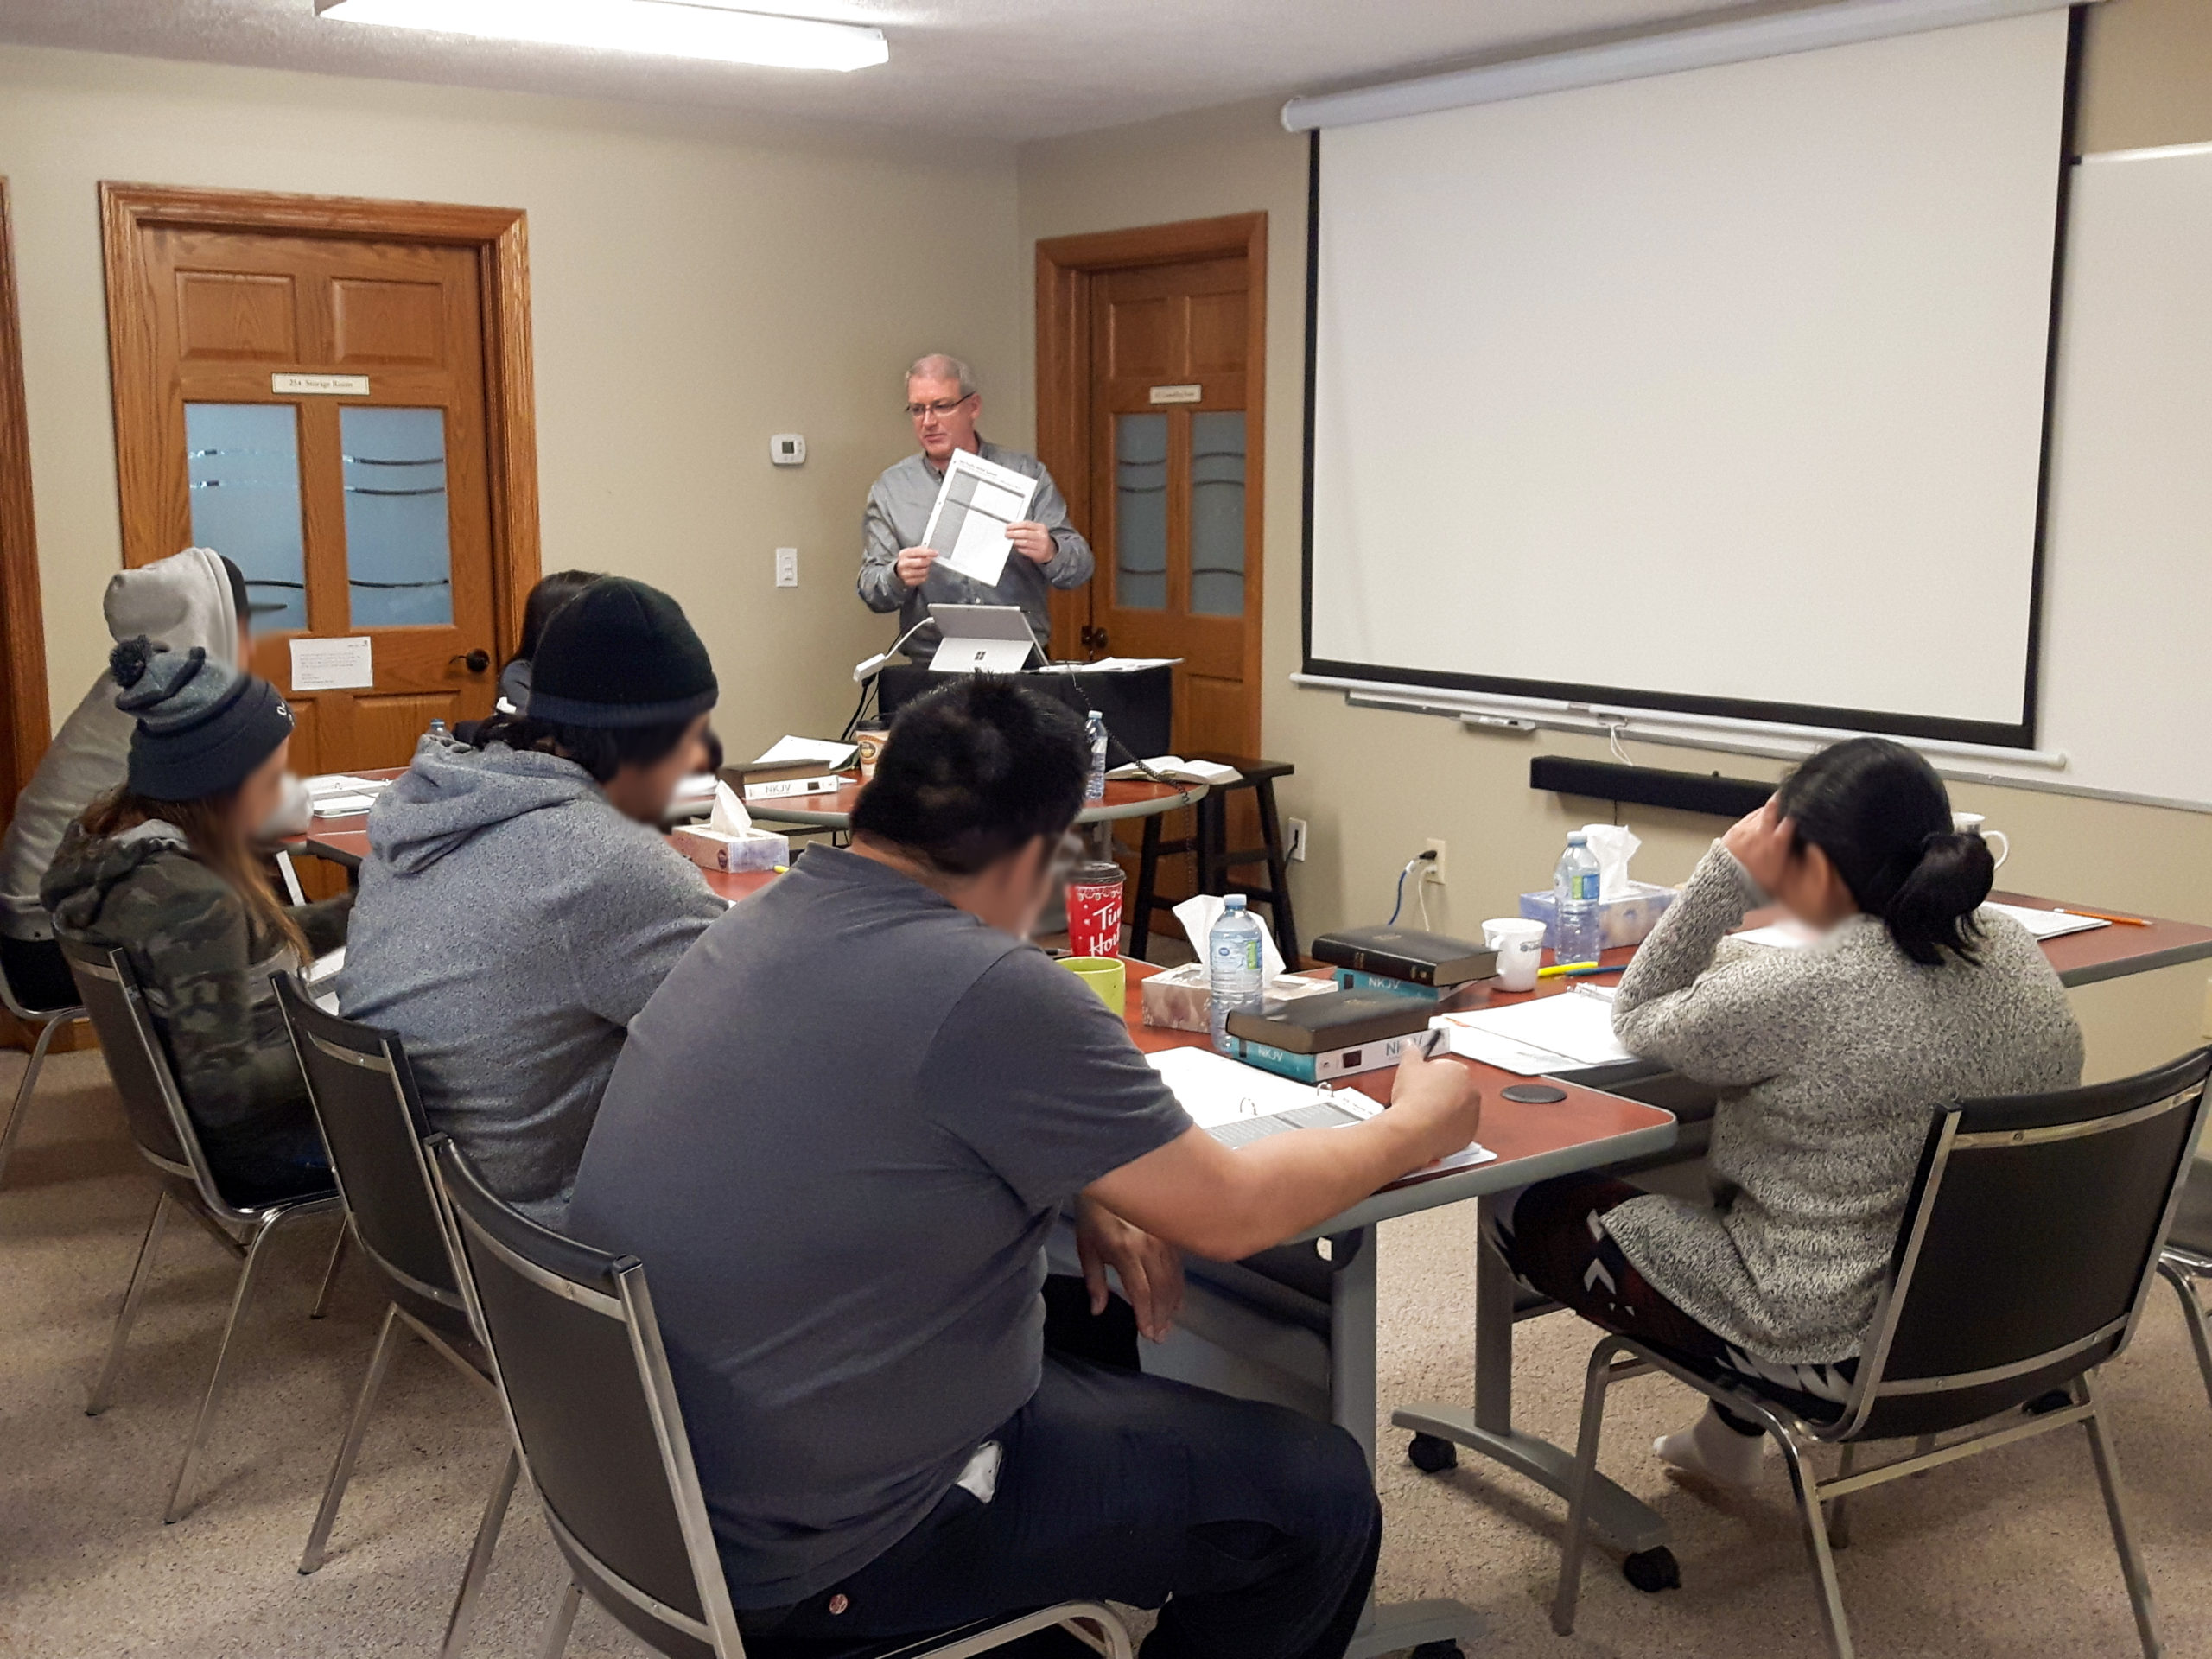 Mark teaching during a Family Counseling Program